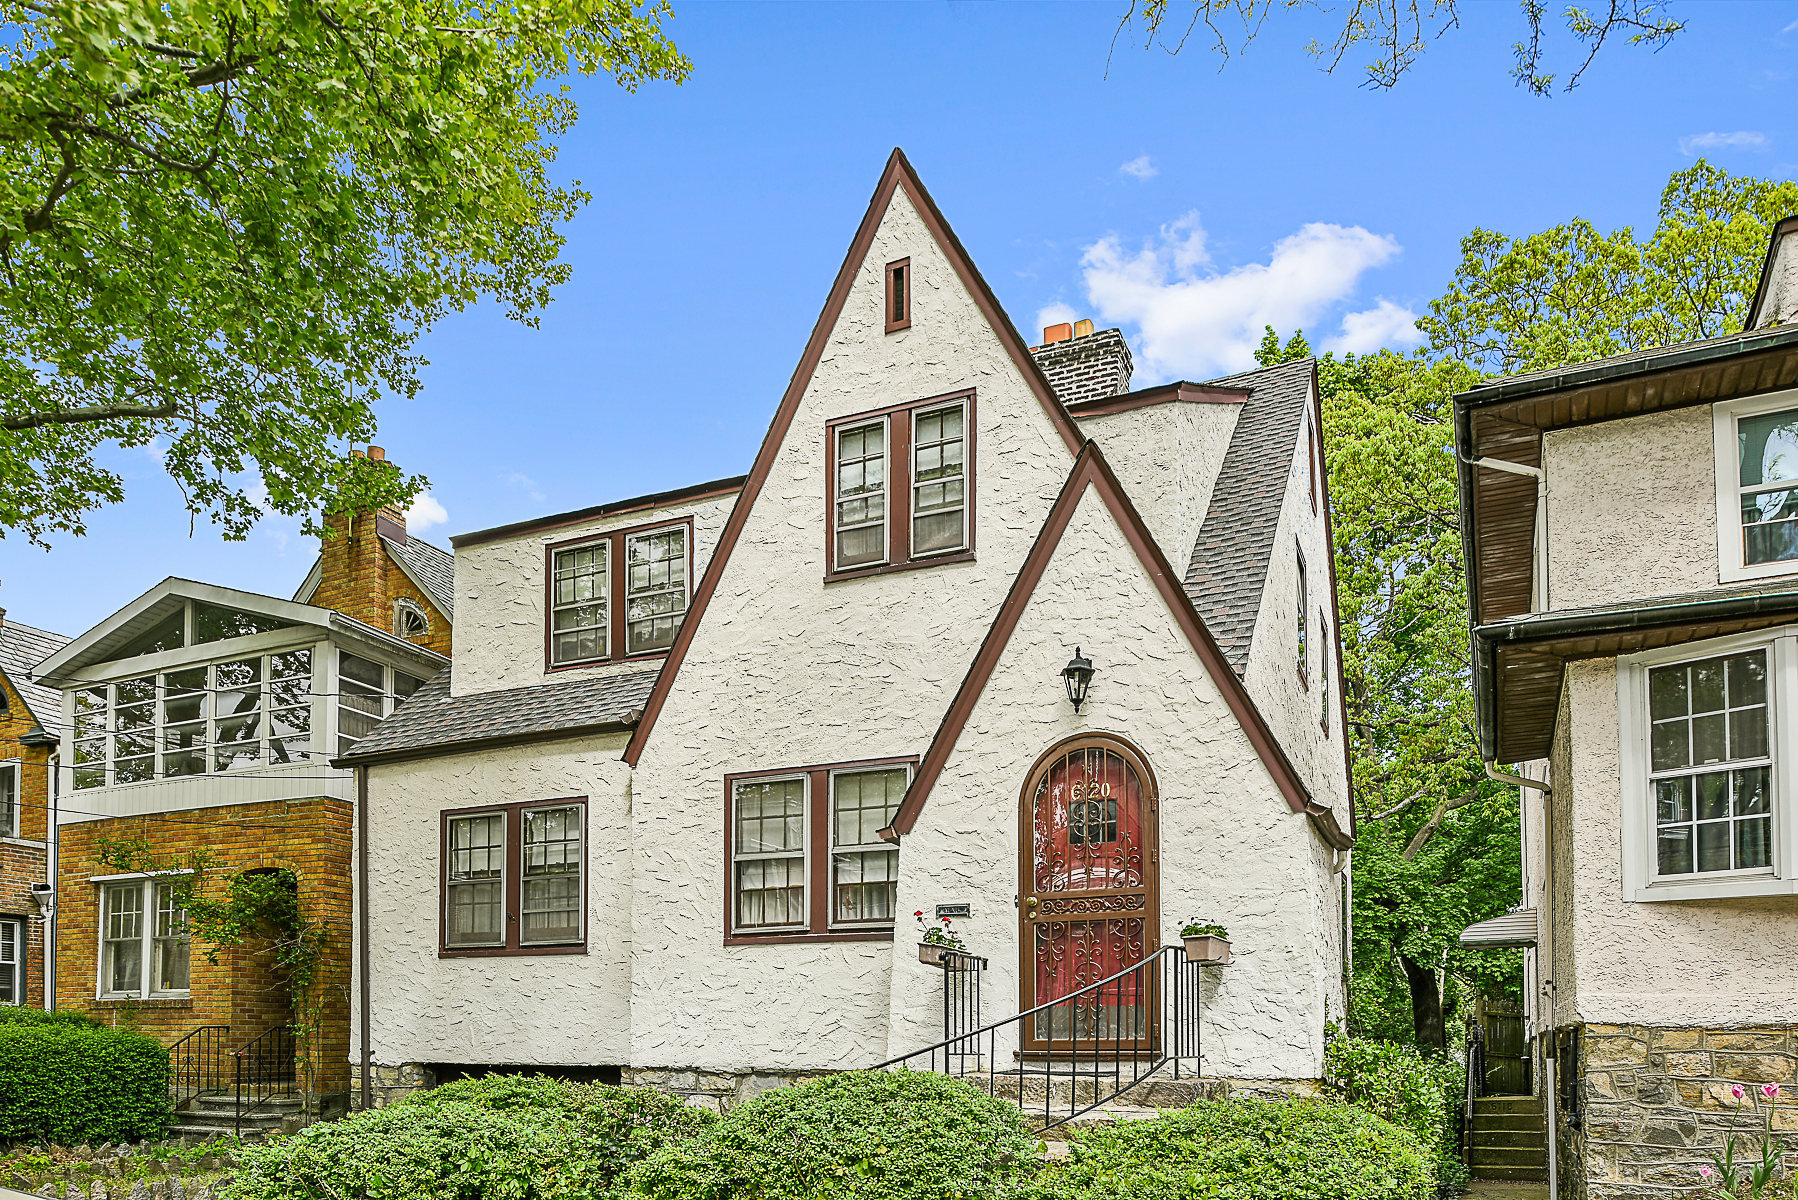 Single Family Home for Sale at Charming and Historic 6 Bedroom Home 6120 Fieldston Road Riverdale, New York, 10471 United States